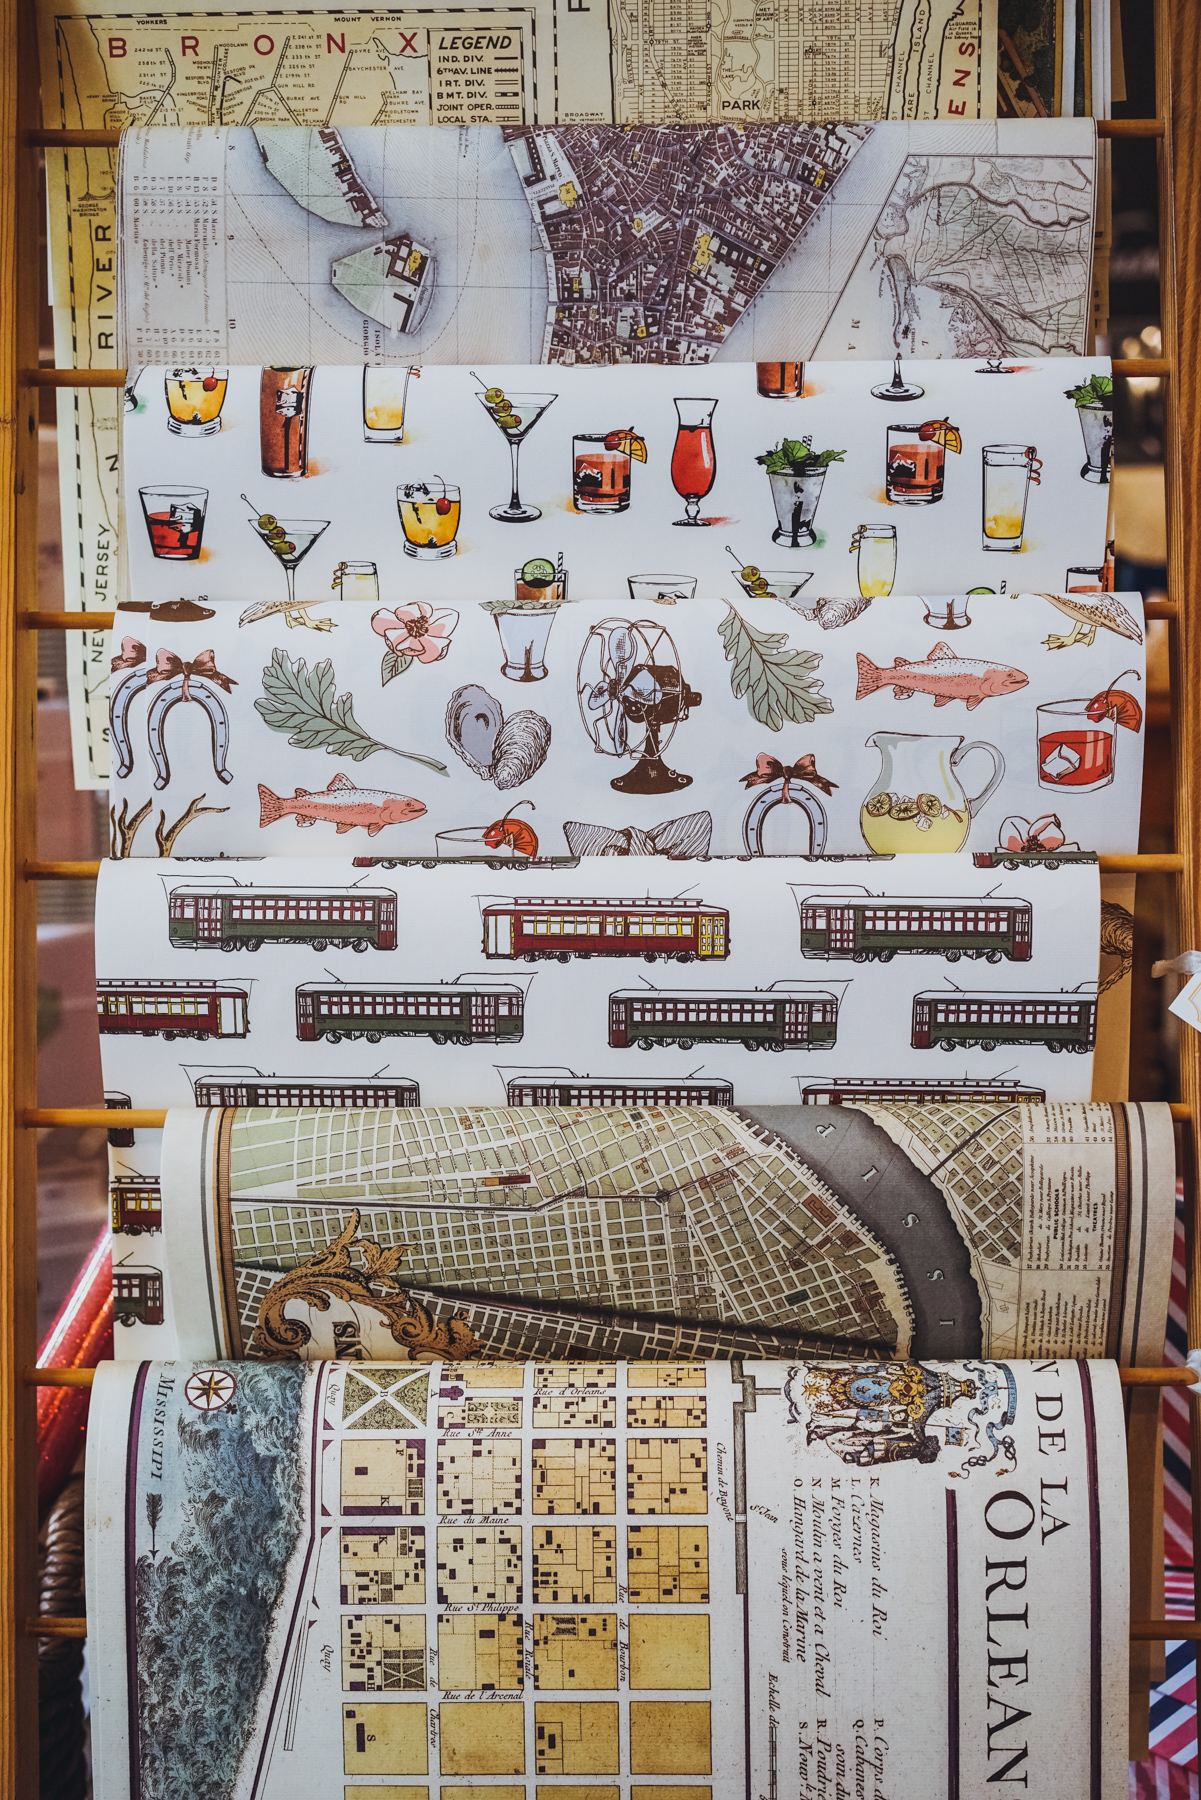 Scriptura's unique wrapping paper is almost too pretty to use as wrapping paper! Whether it's classic New Orleans cocktails, Louisiana seafood, streetcars or vintage maps, make an impression with their signature paper goods.